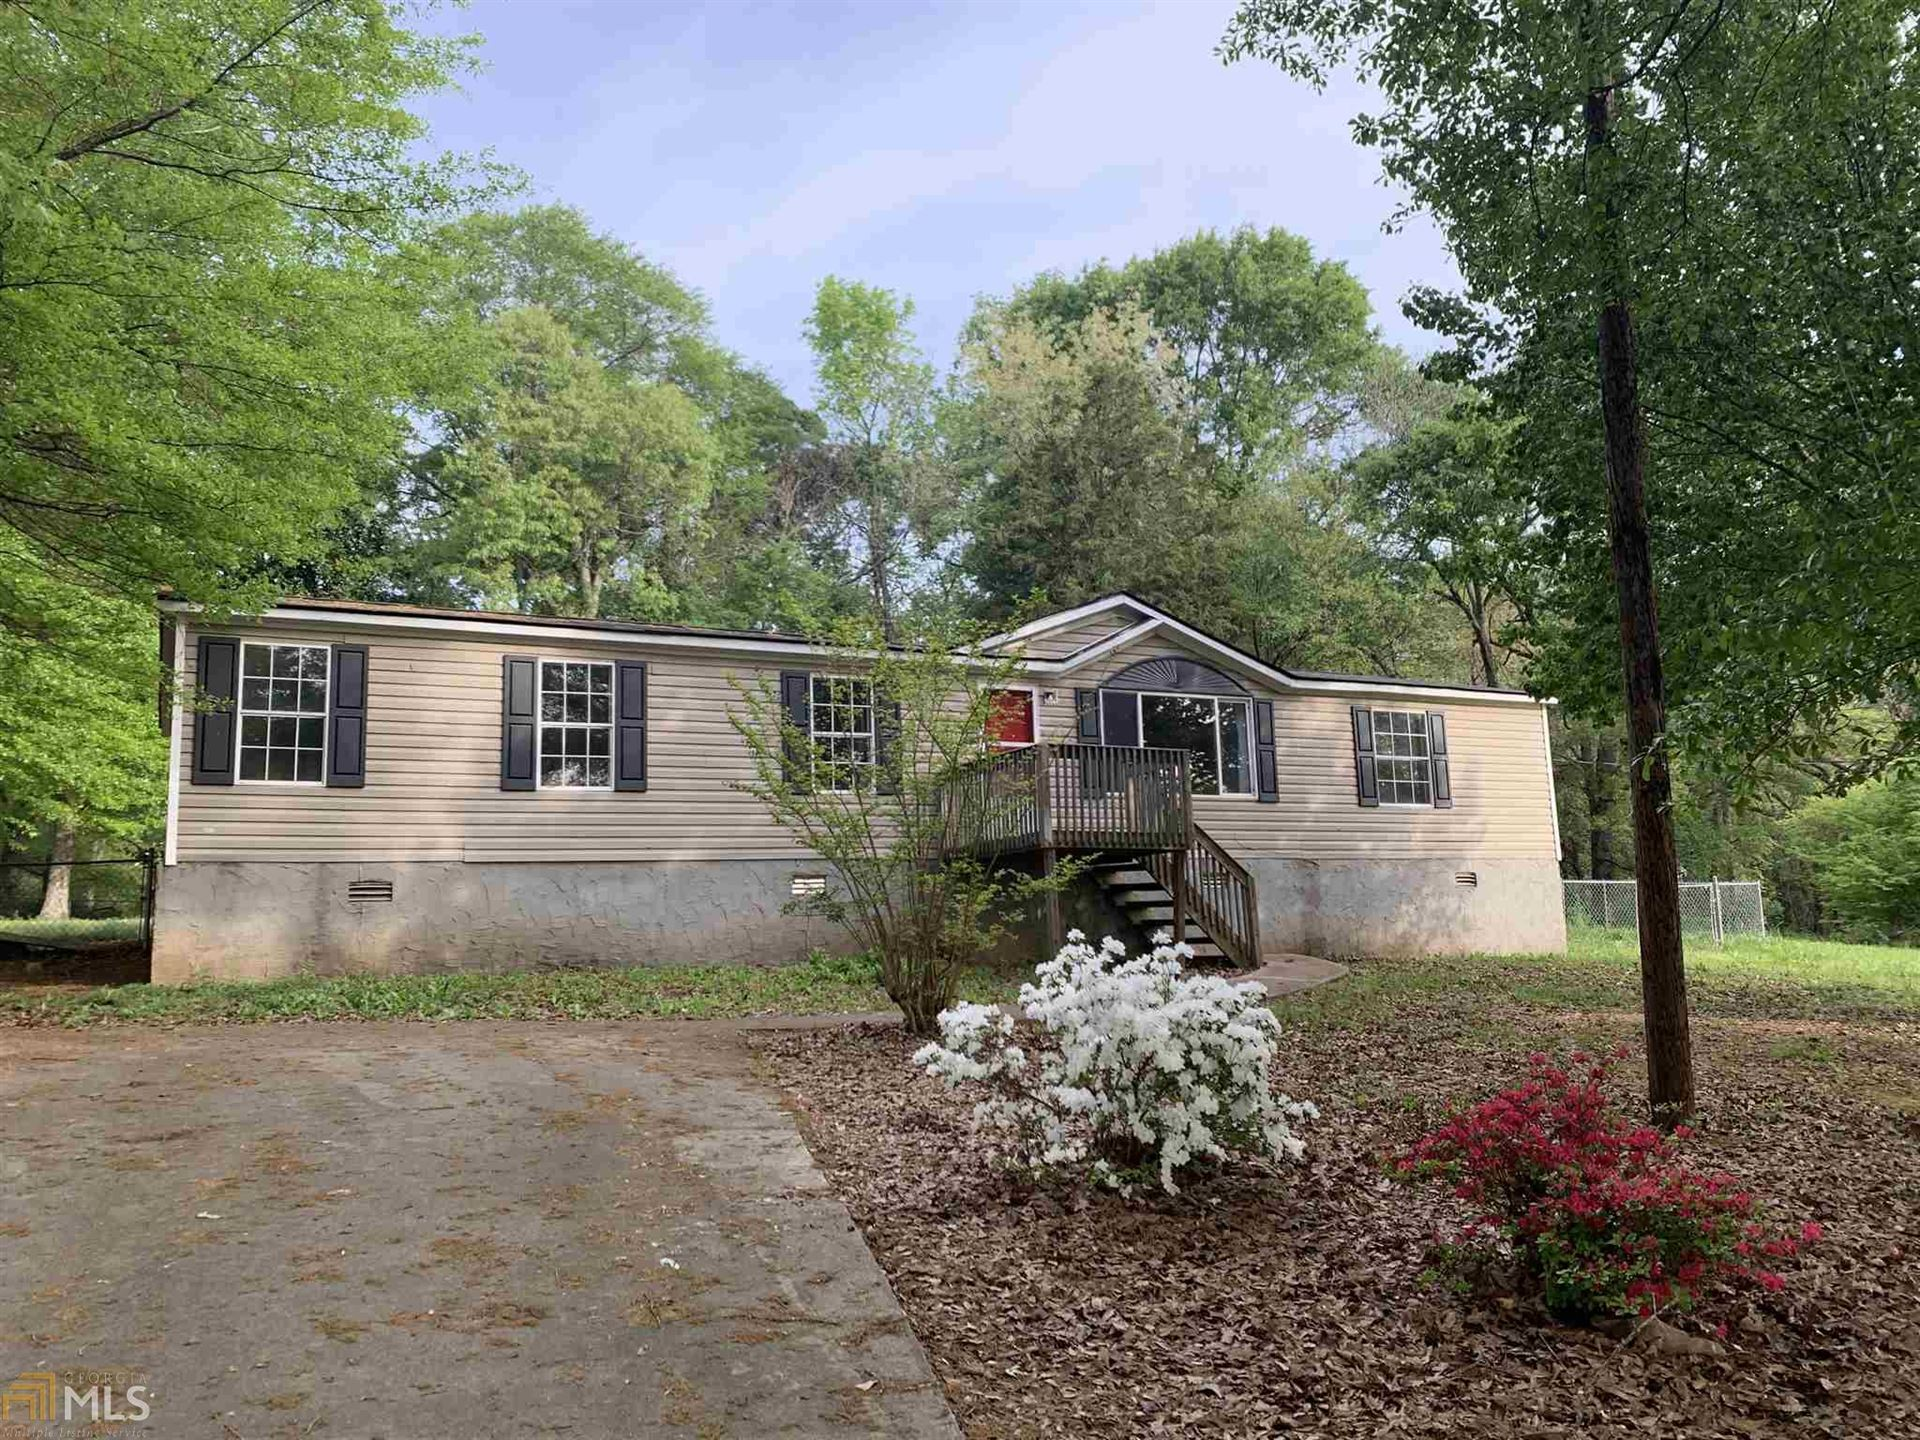 1391 Northeast St, Monticello, GA 31064 - MLS#: 8958675